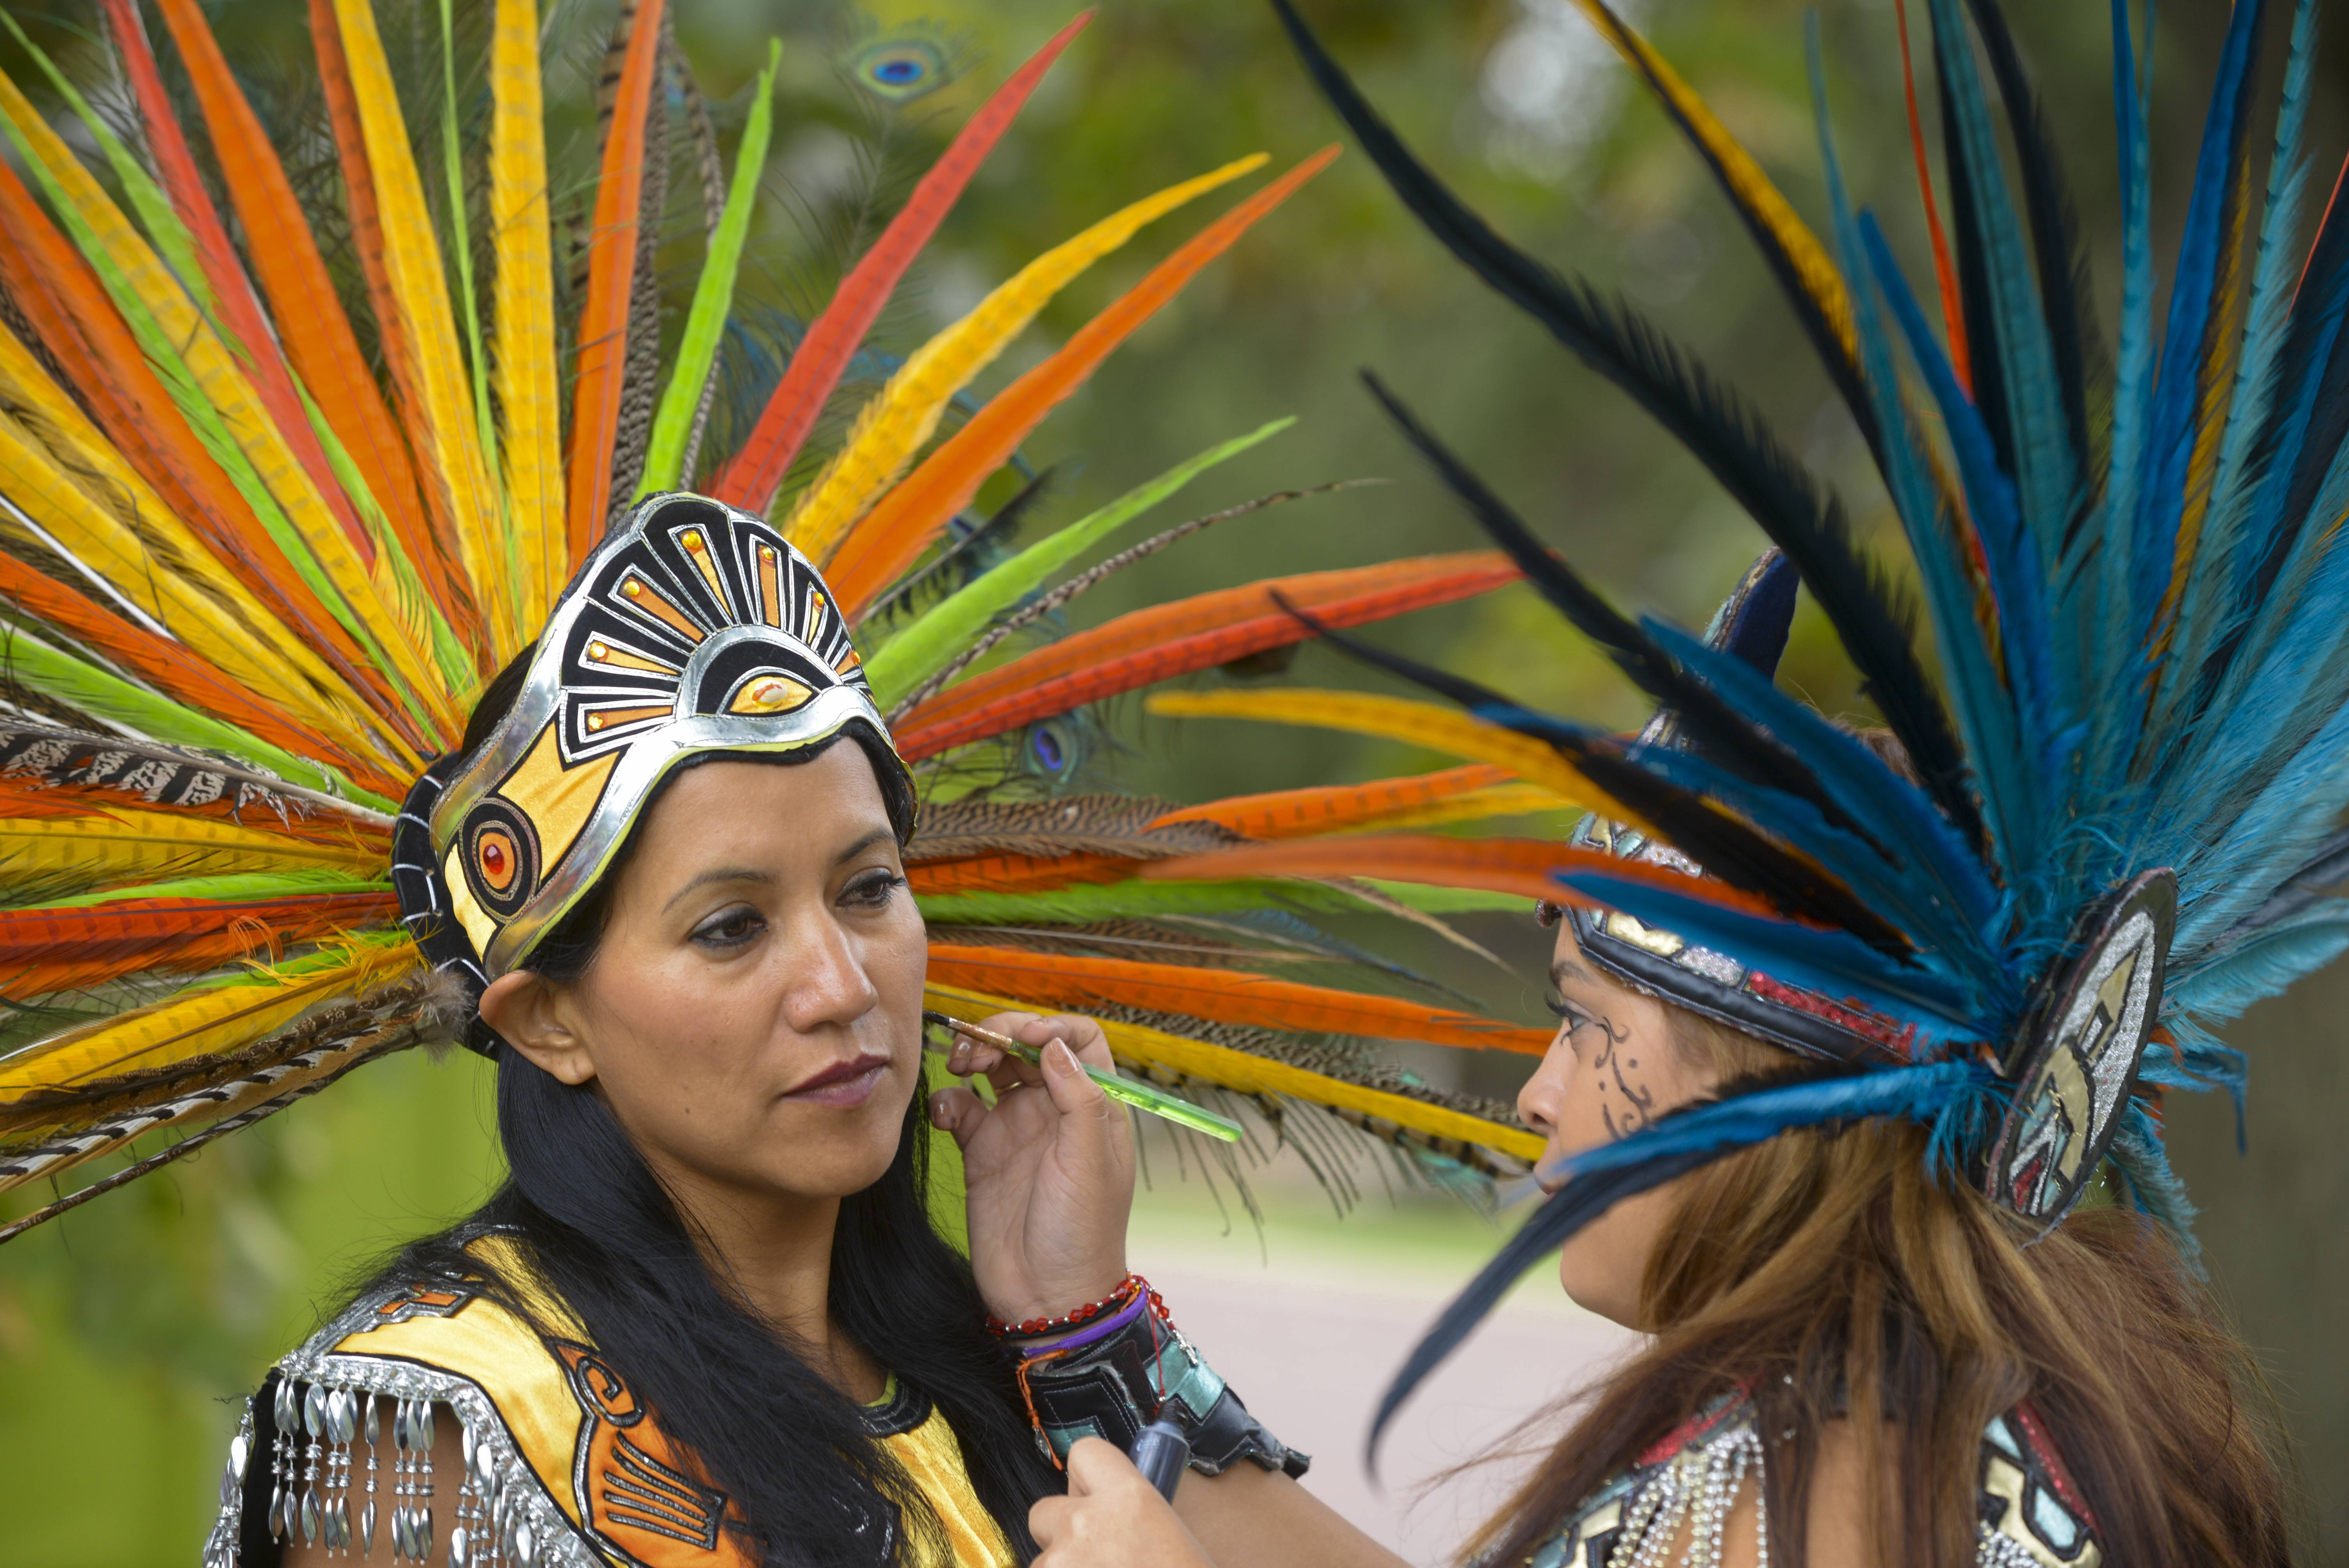 The Midwest SOARRING Harvest Pow Wow, taking place Saturday and Sunday at Naper Settlement in Naperville, is a colorful celebration of Native American culture and tradition.